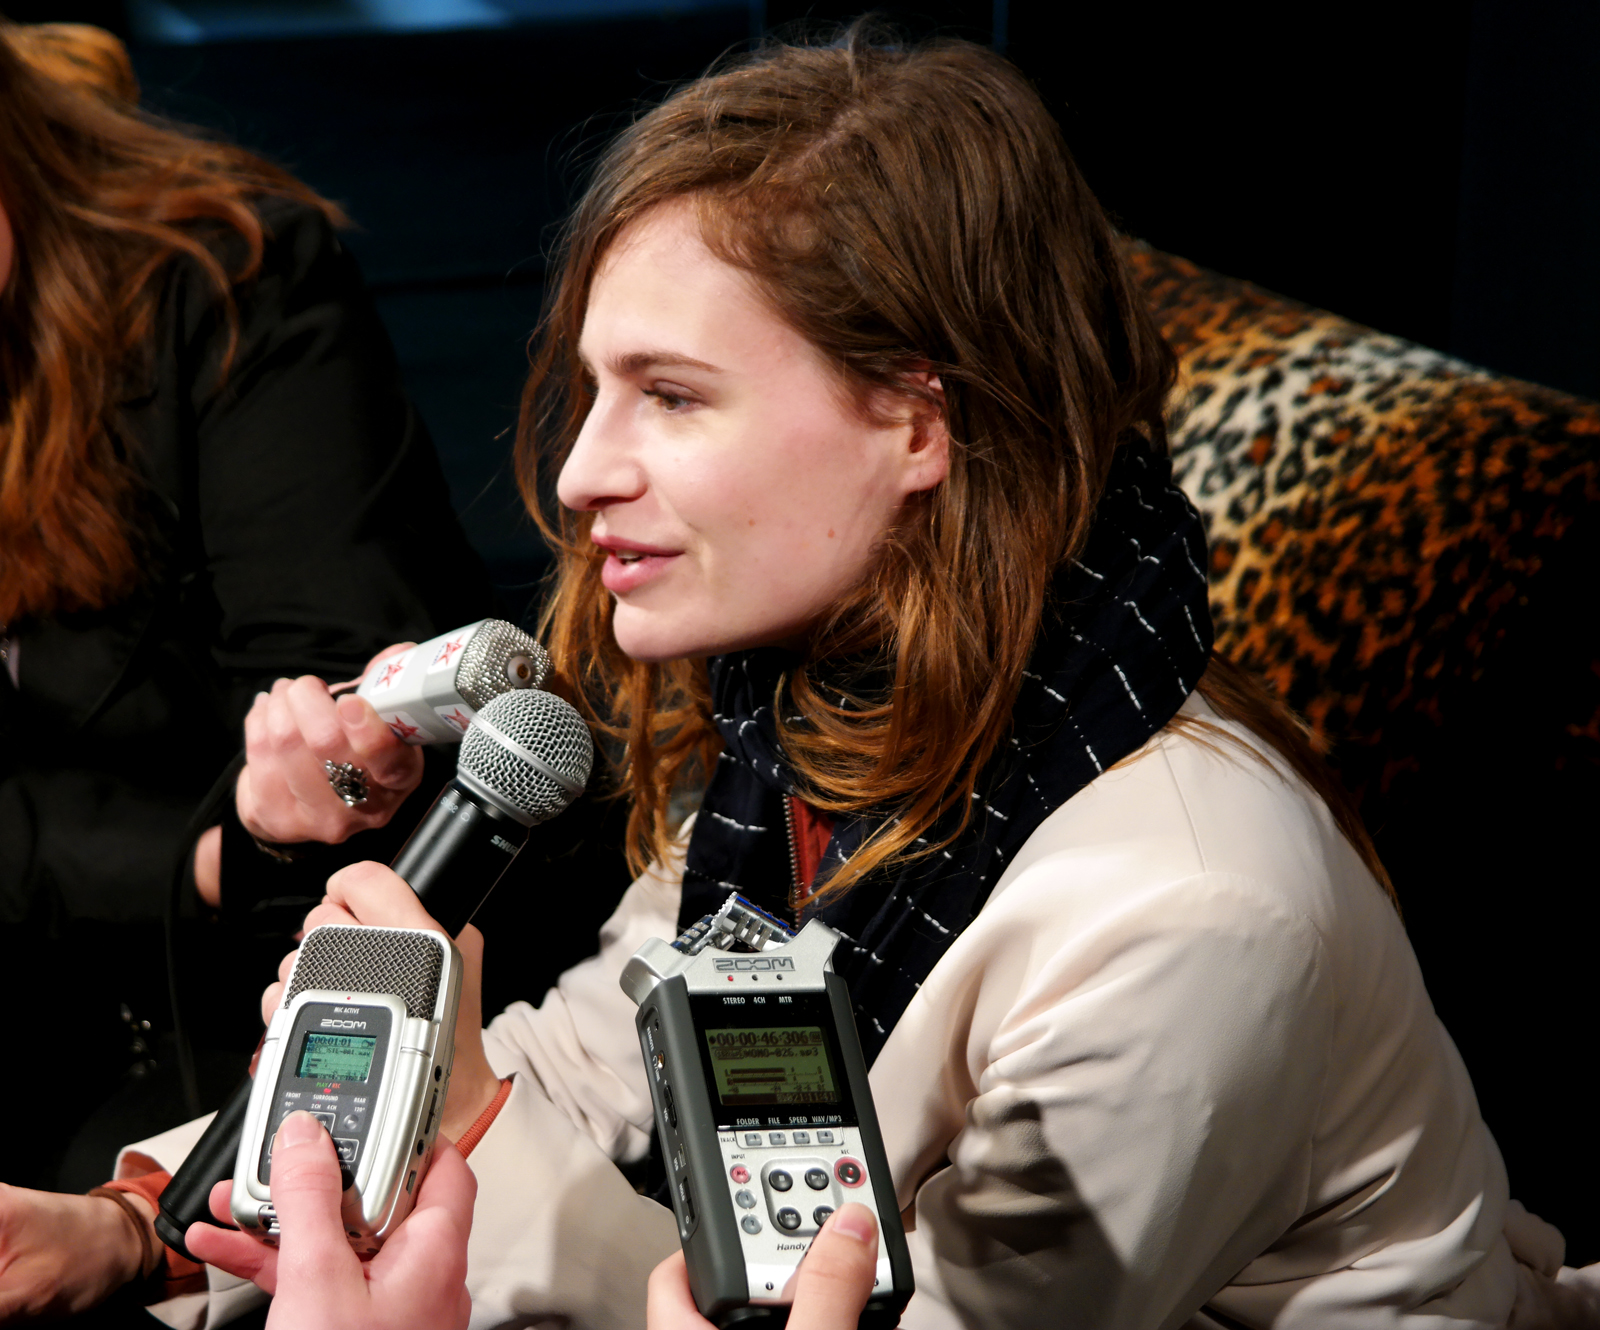 Christine-and-the-queens-concert-festival-Art-Rock-2015-interview-conférence-de-presse-saint-brieuc-tournée-chaleur-humaine-tour-france-bretagne-photo-by-united-states-of-paris-blog